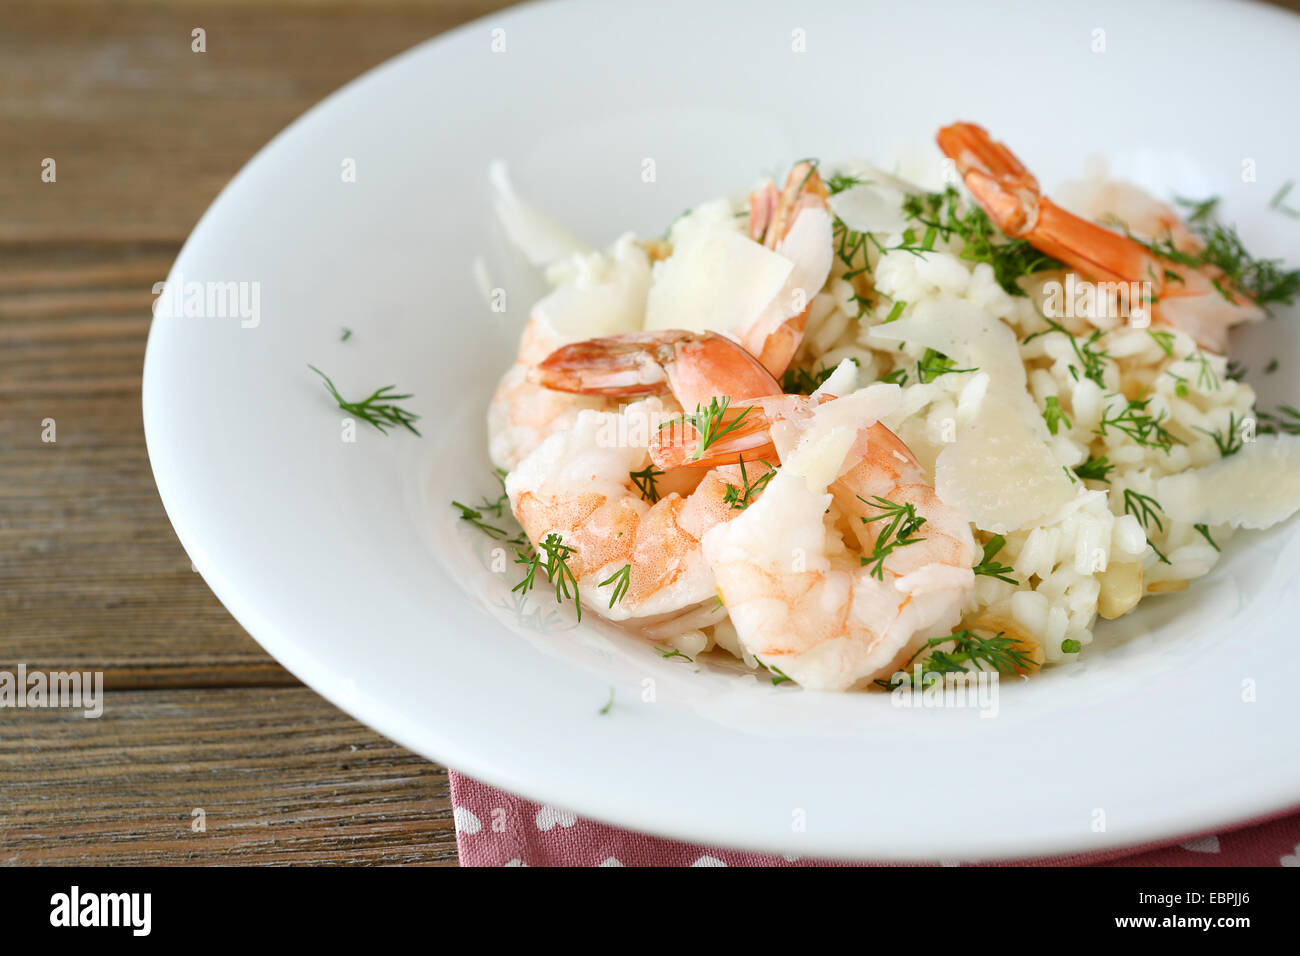 Rice with shrimp and dill, food close-up - Stock Image